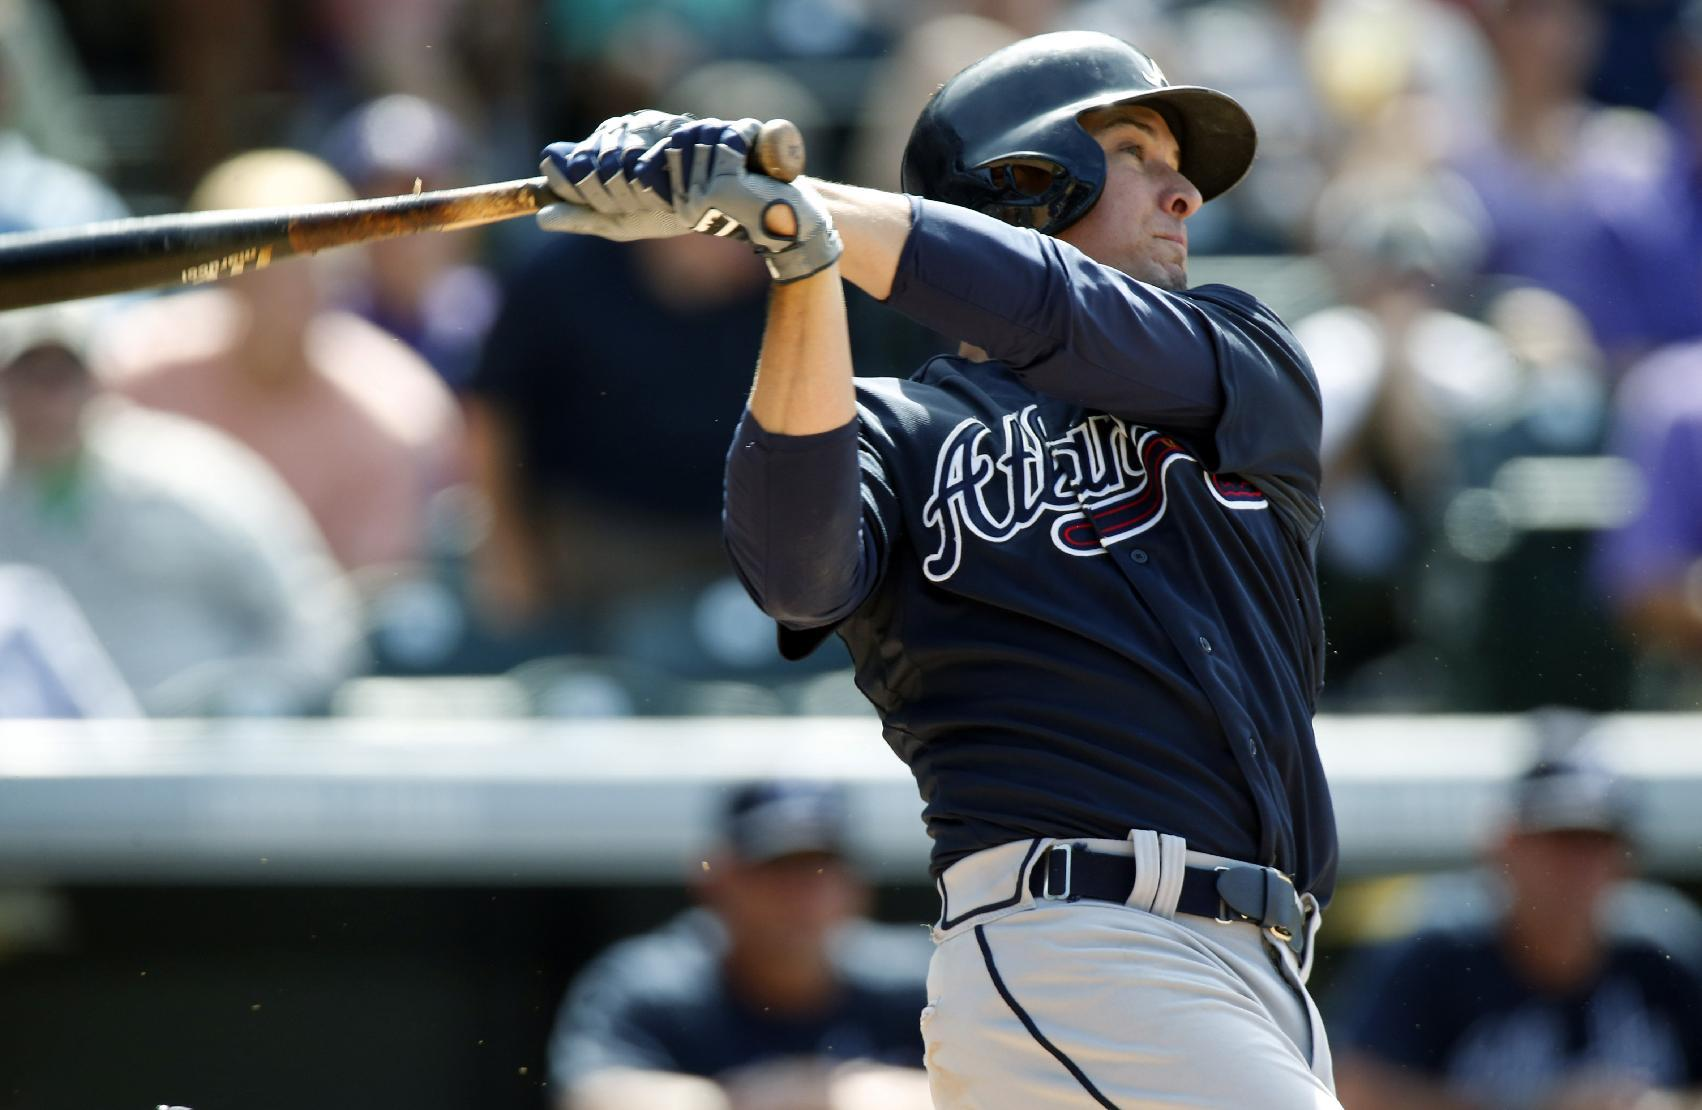 Kelly Johnson's young son pushed for his return to Braves